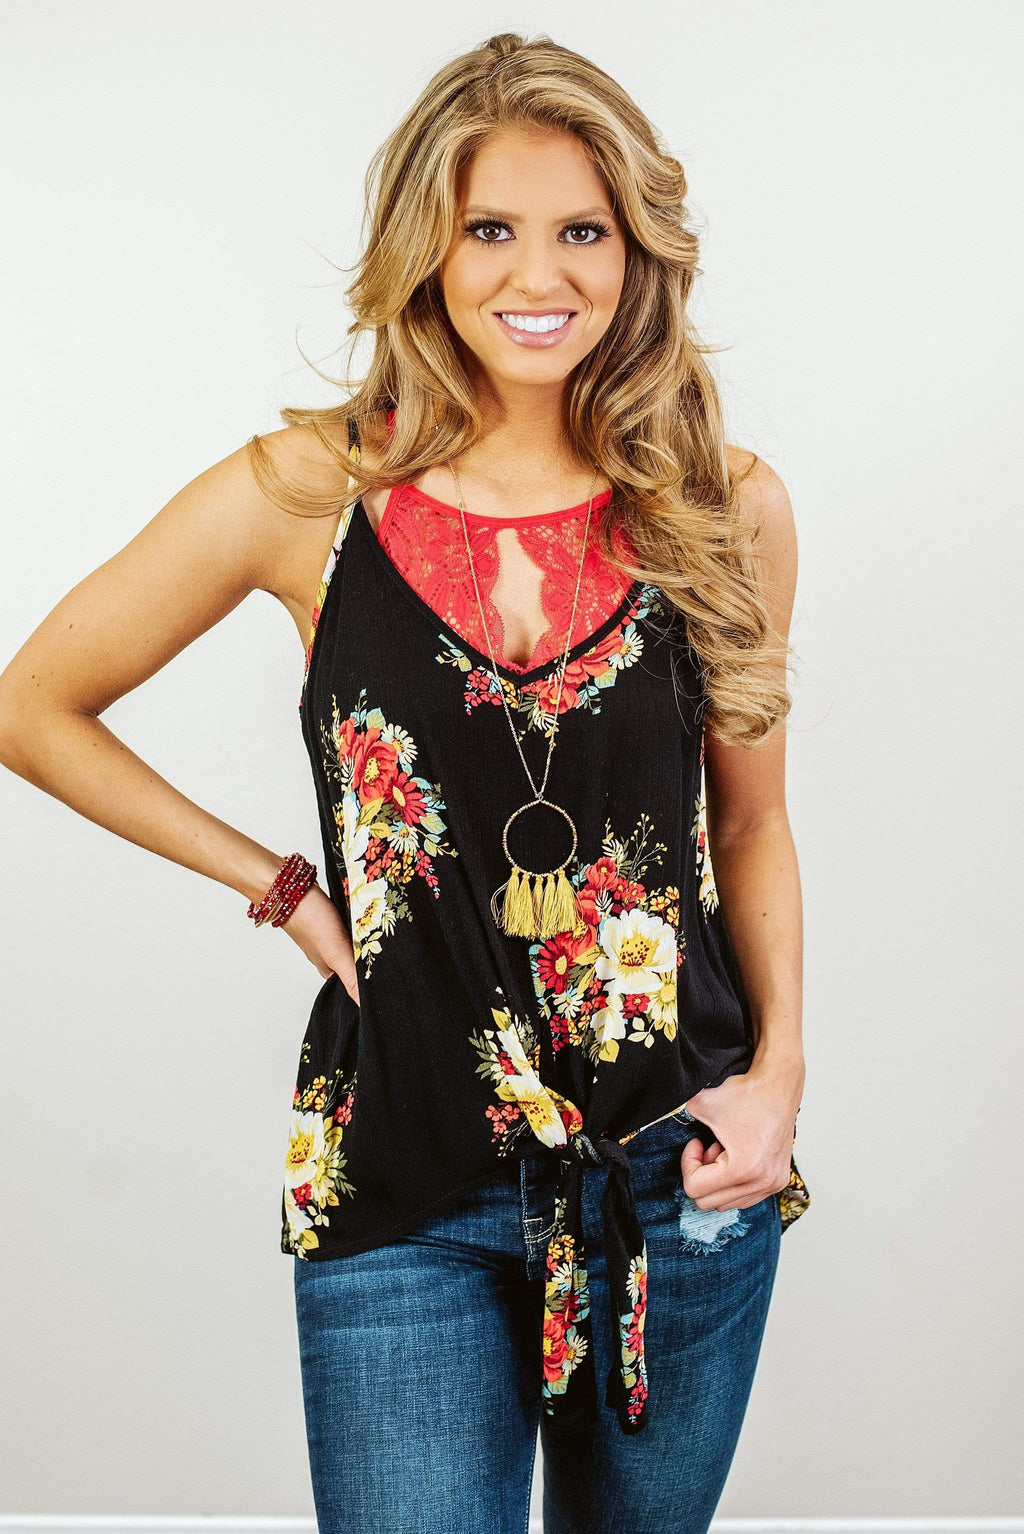 Glitzy Girlz Boutique Petals In The Wind Top, Black